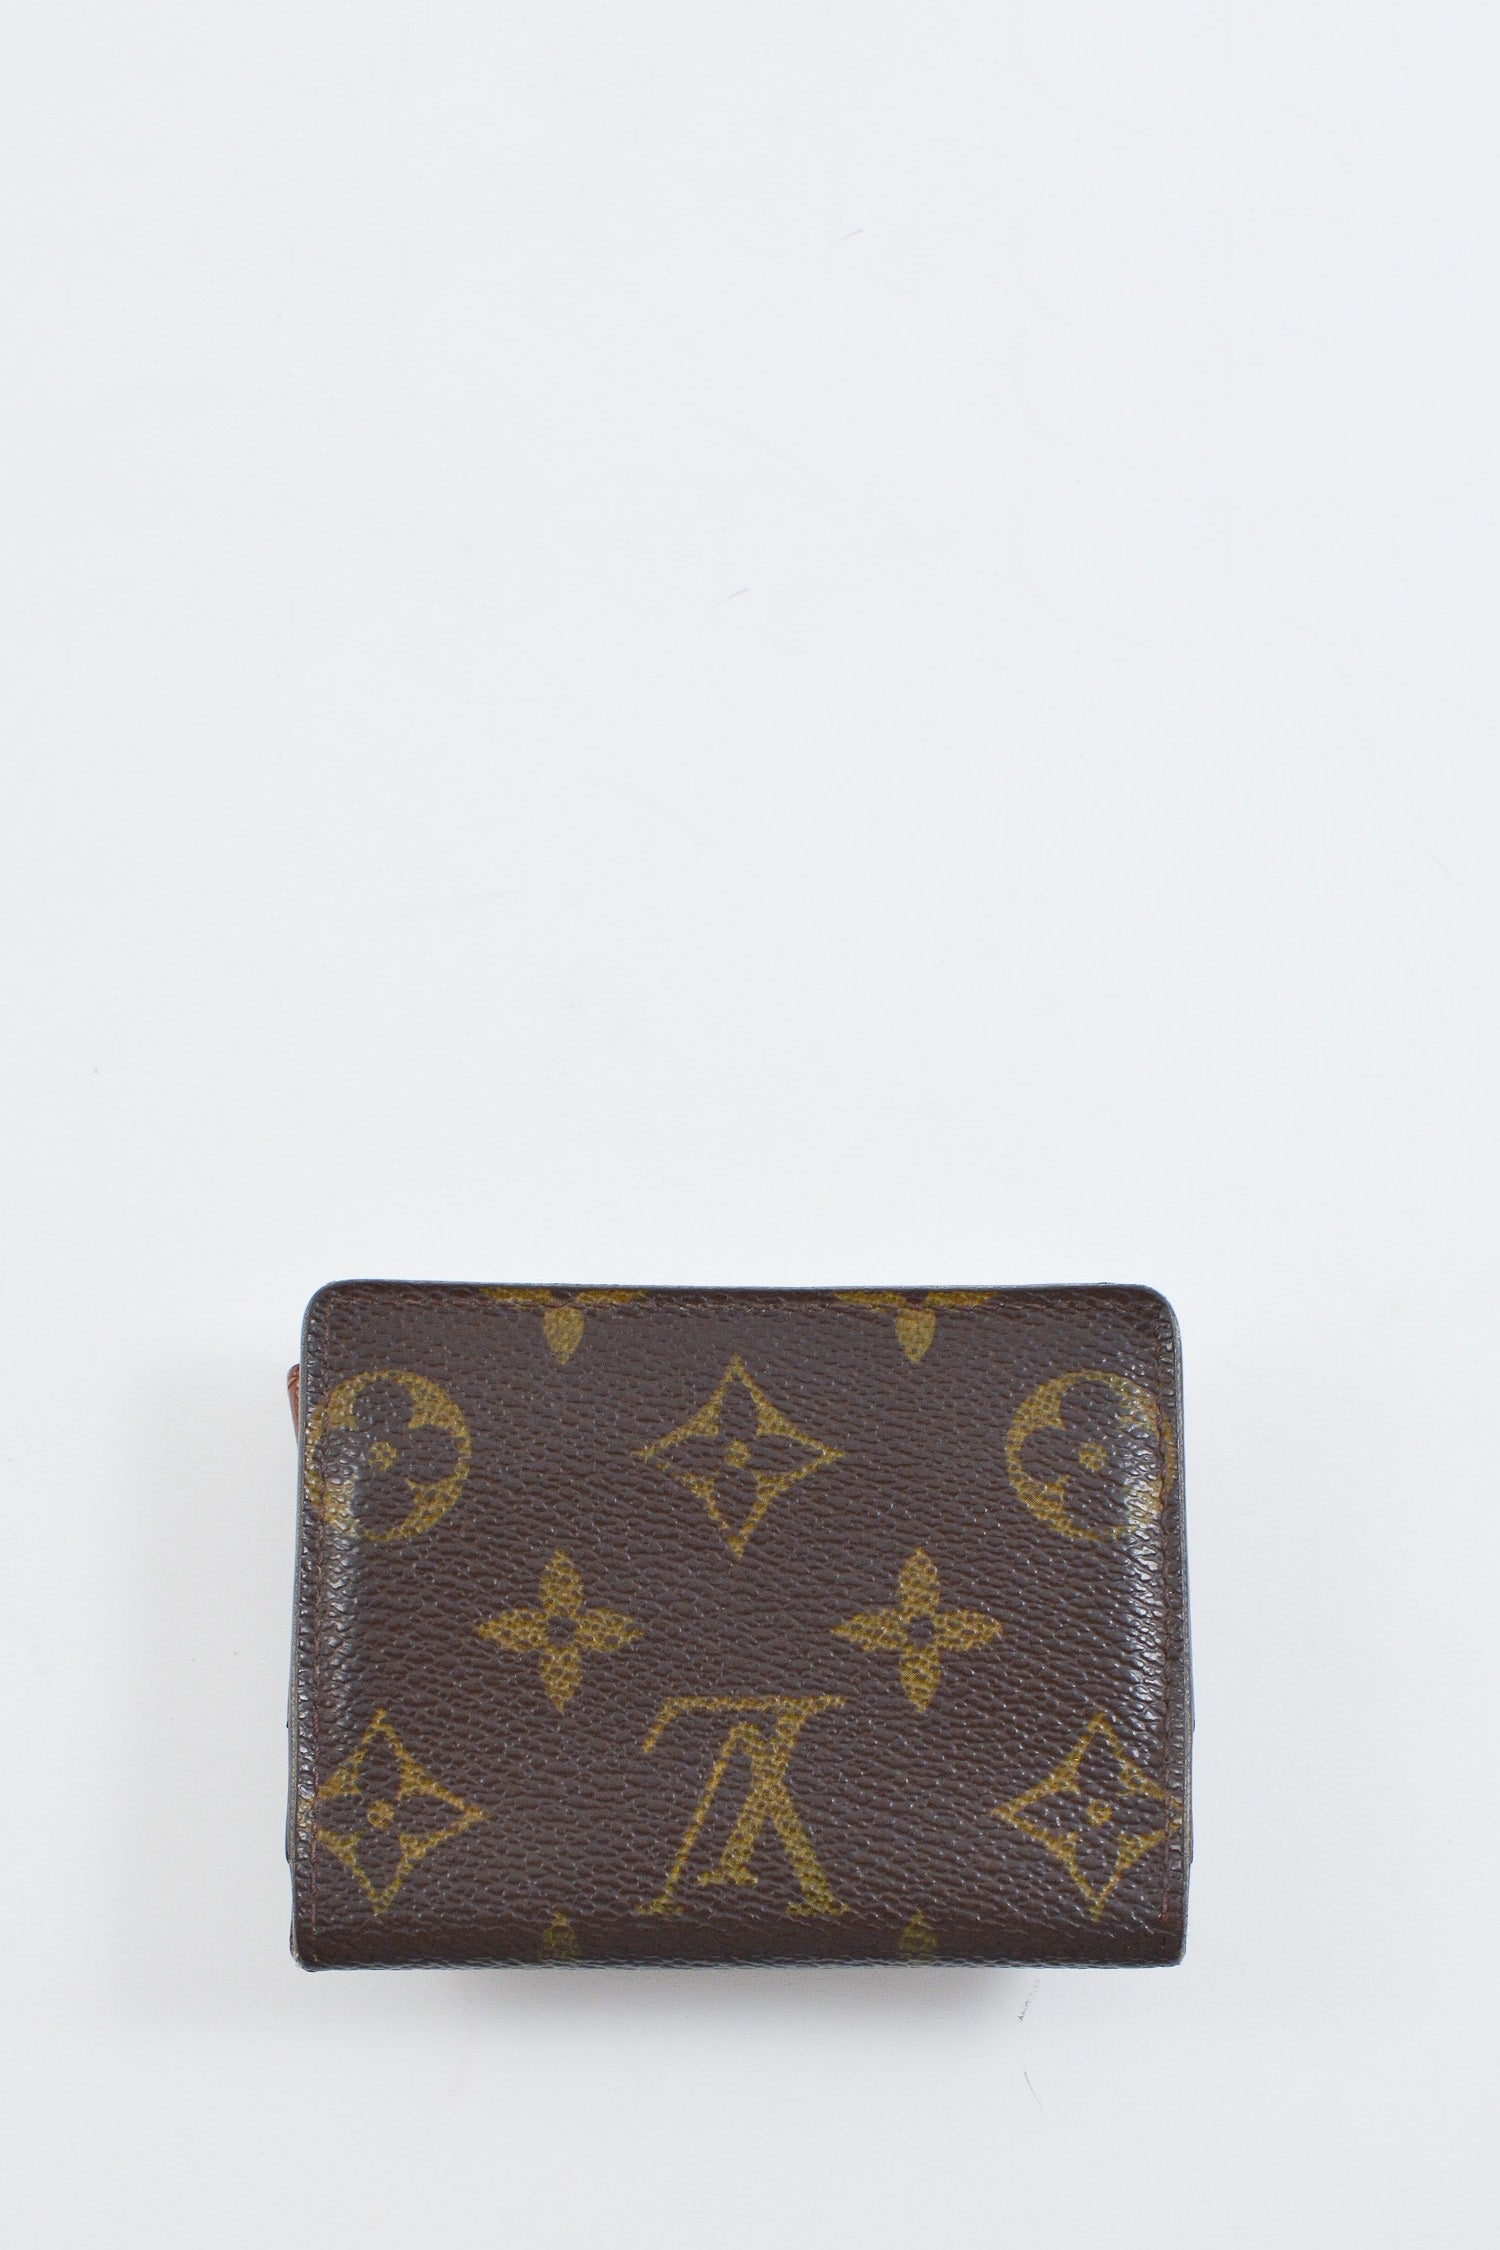 Louis Vuitton Small Wallet